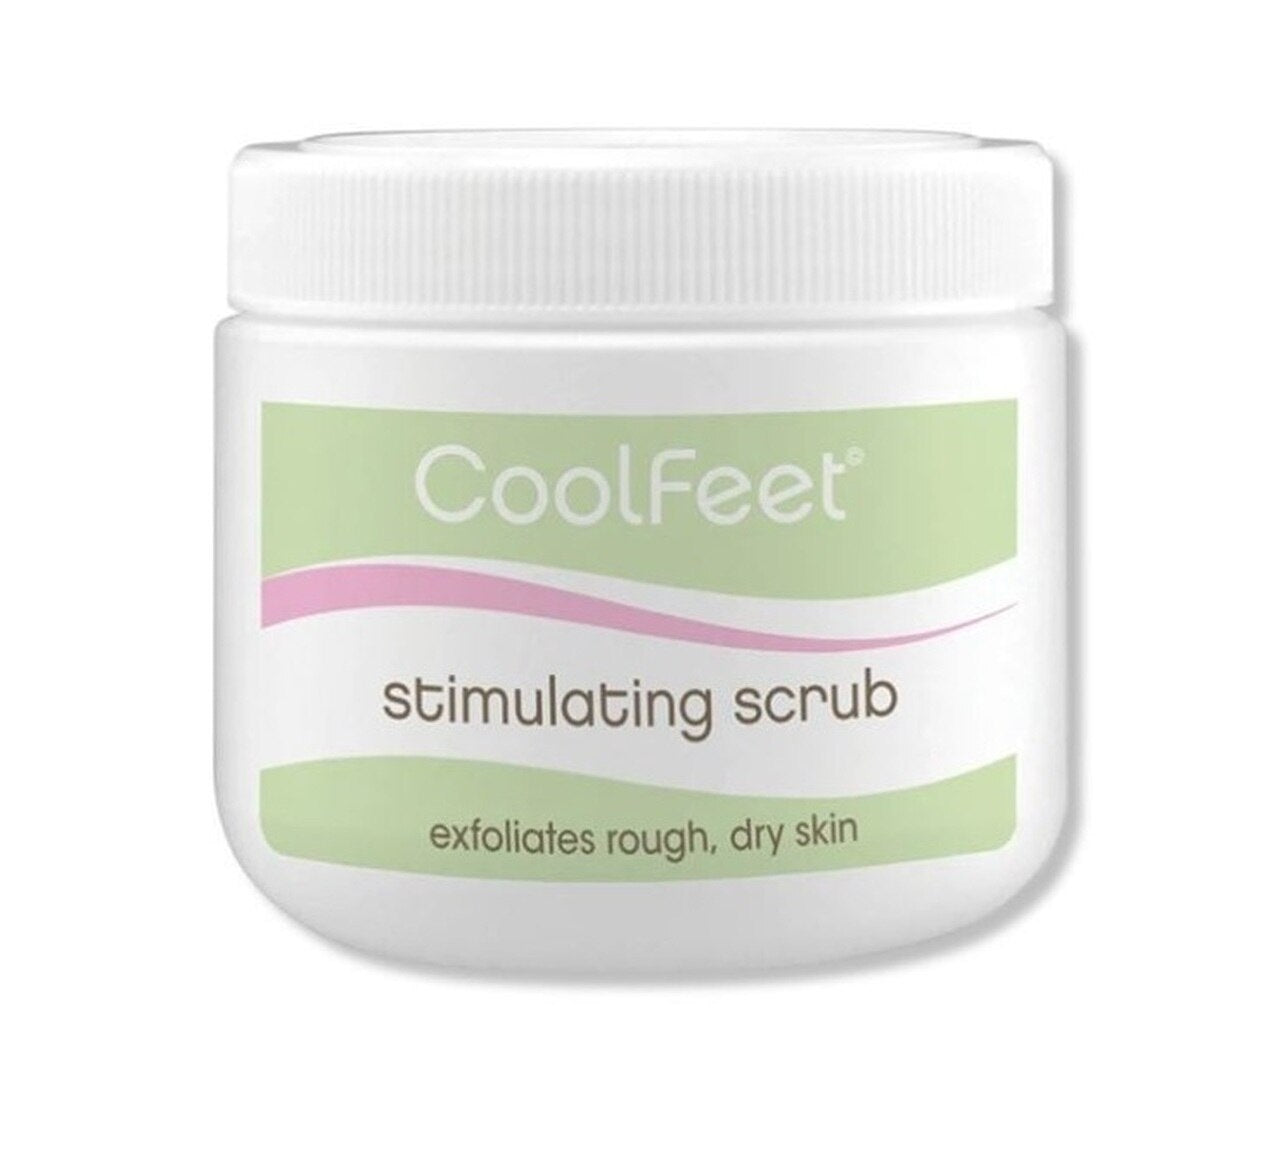 Cool Feet Stimulating Scrub